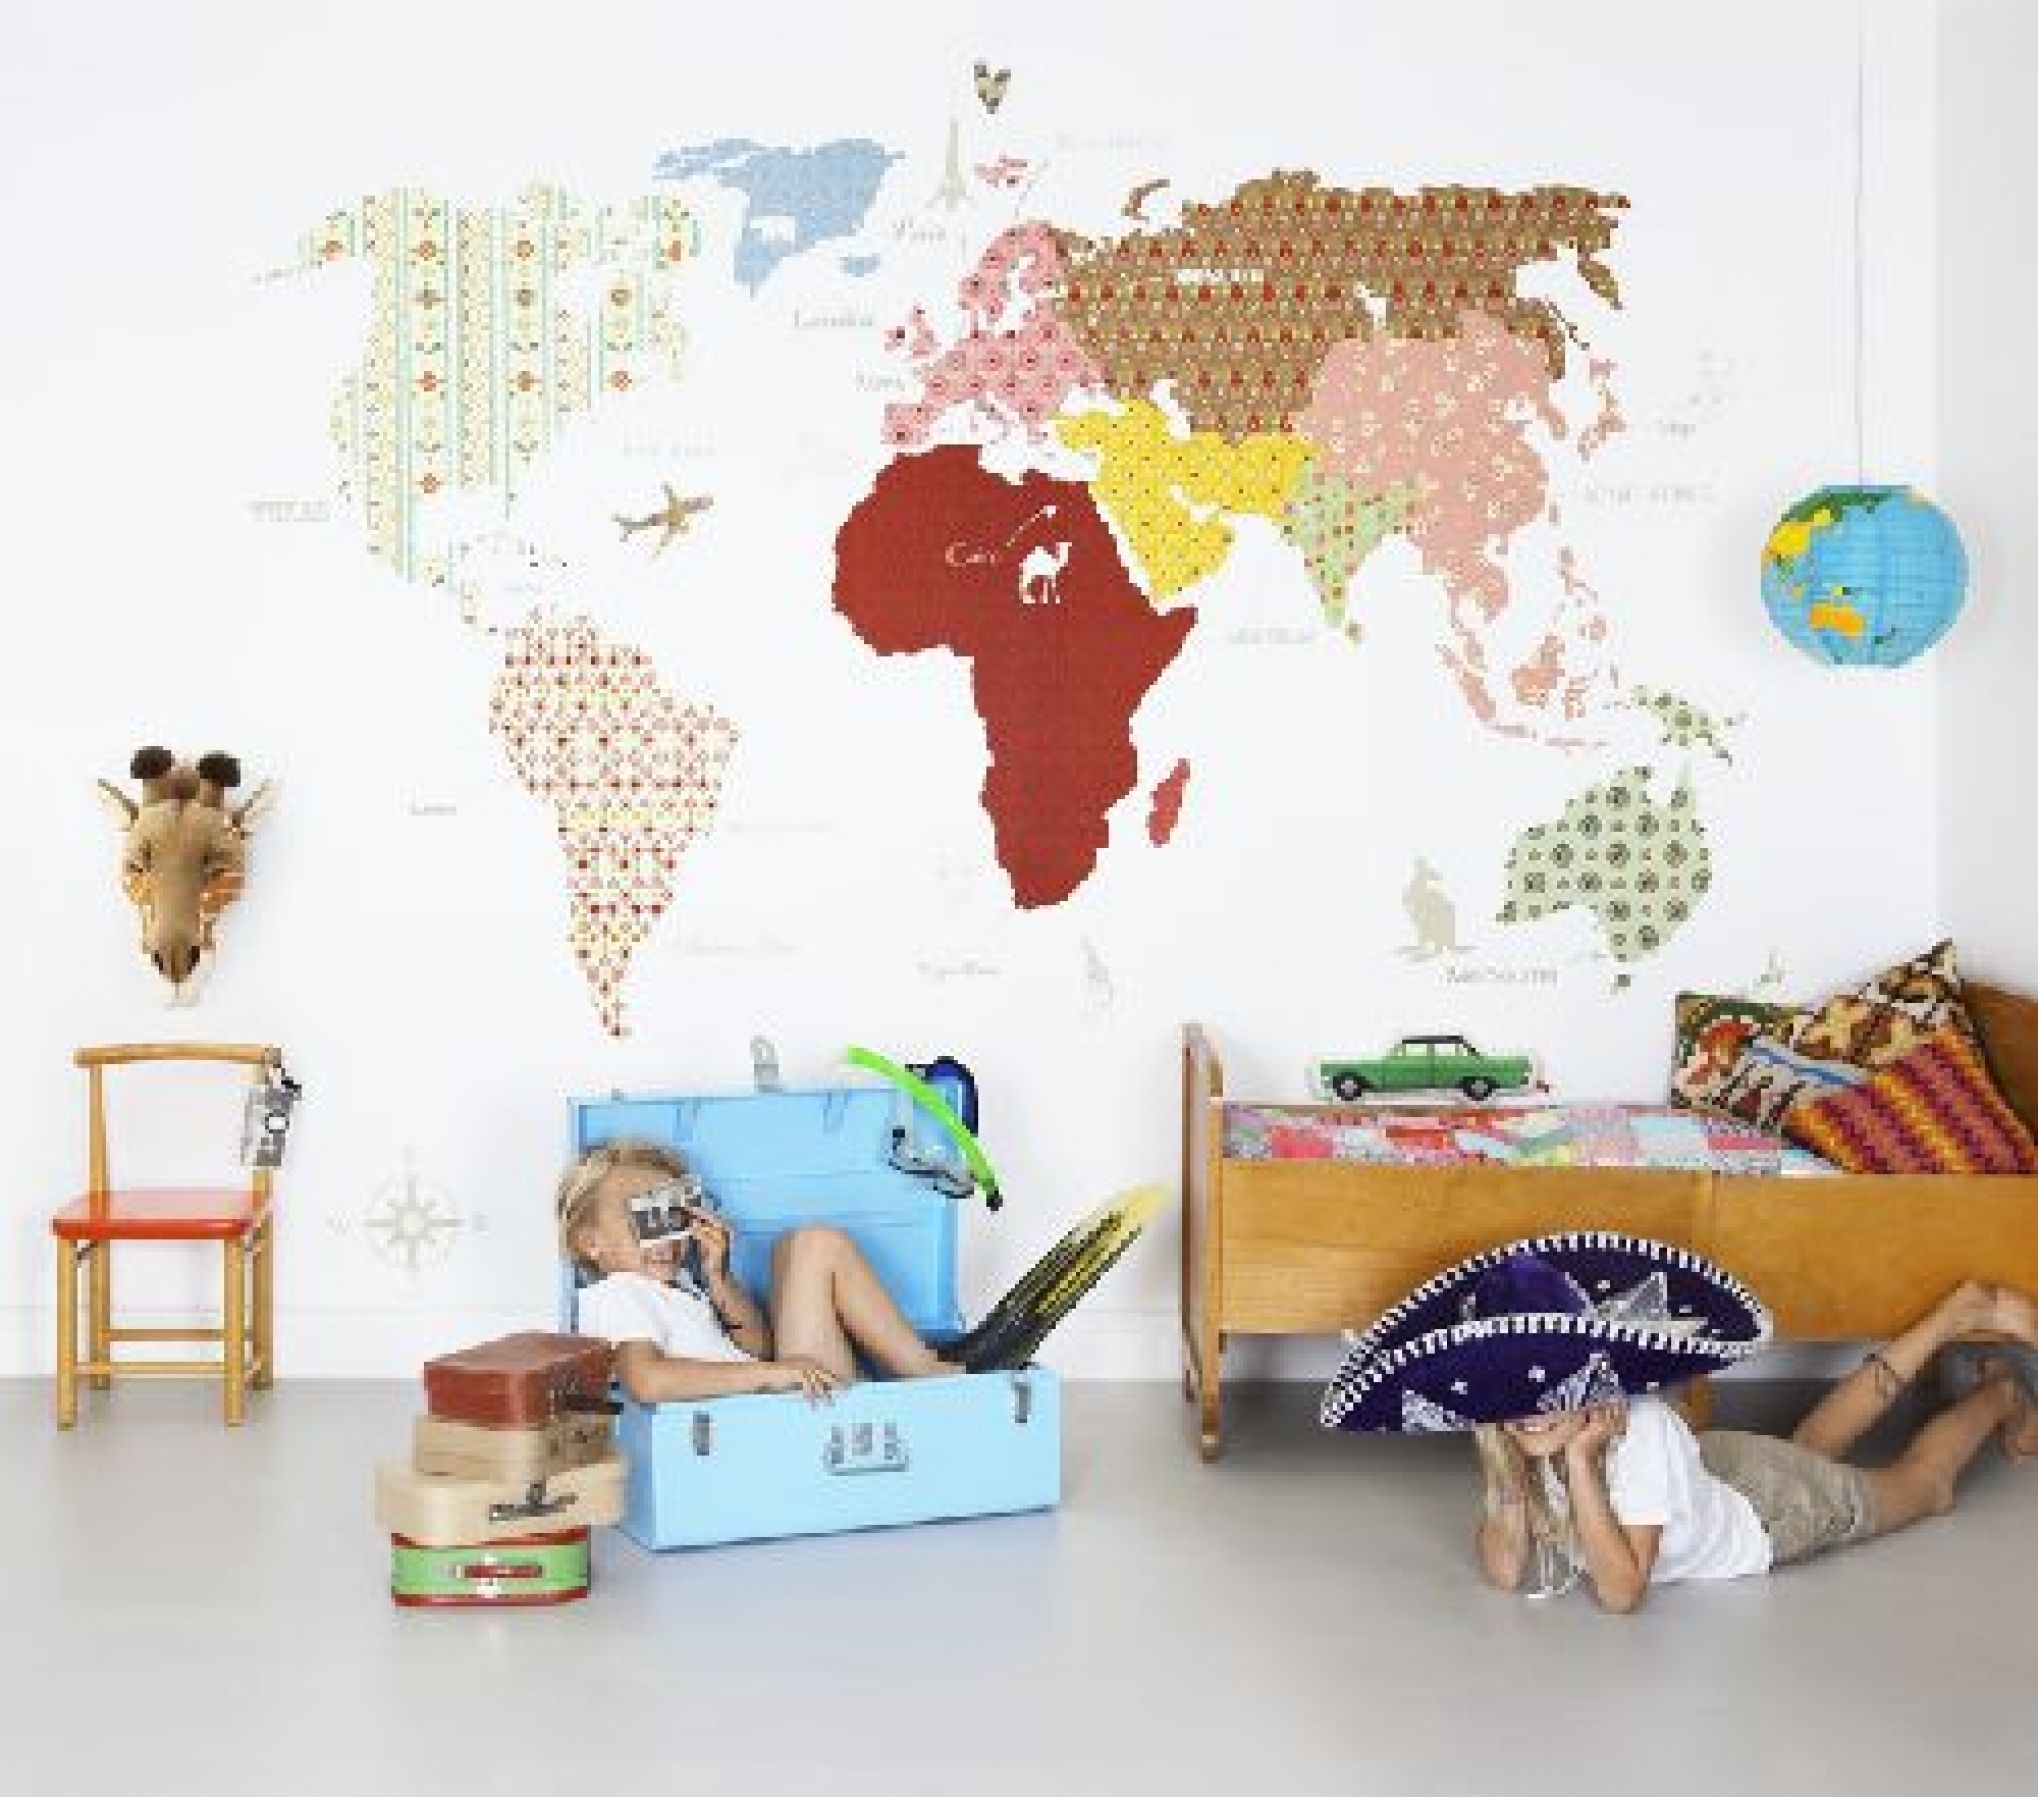 Whole wide world p120201 6 mr perswall wallpapers a fun kids discover educational and interactive wallpaper murals with alphabet stars animals maps all in a fun and cool design free world wide delivery gumiabroncs Image collections